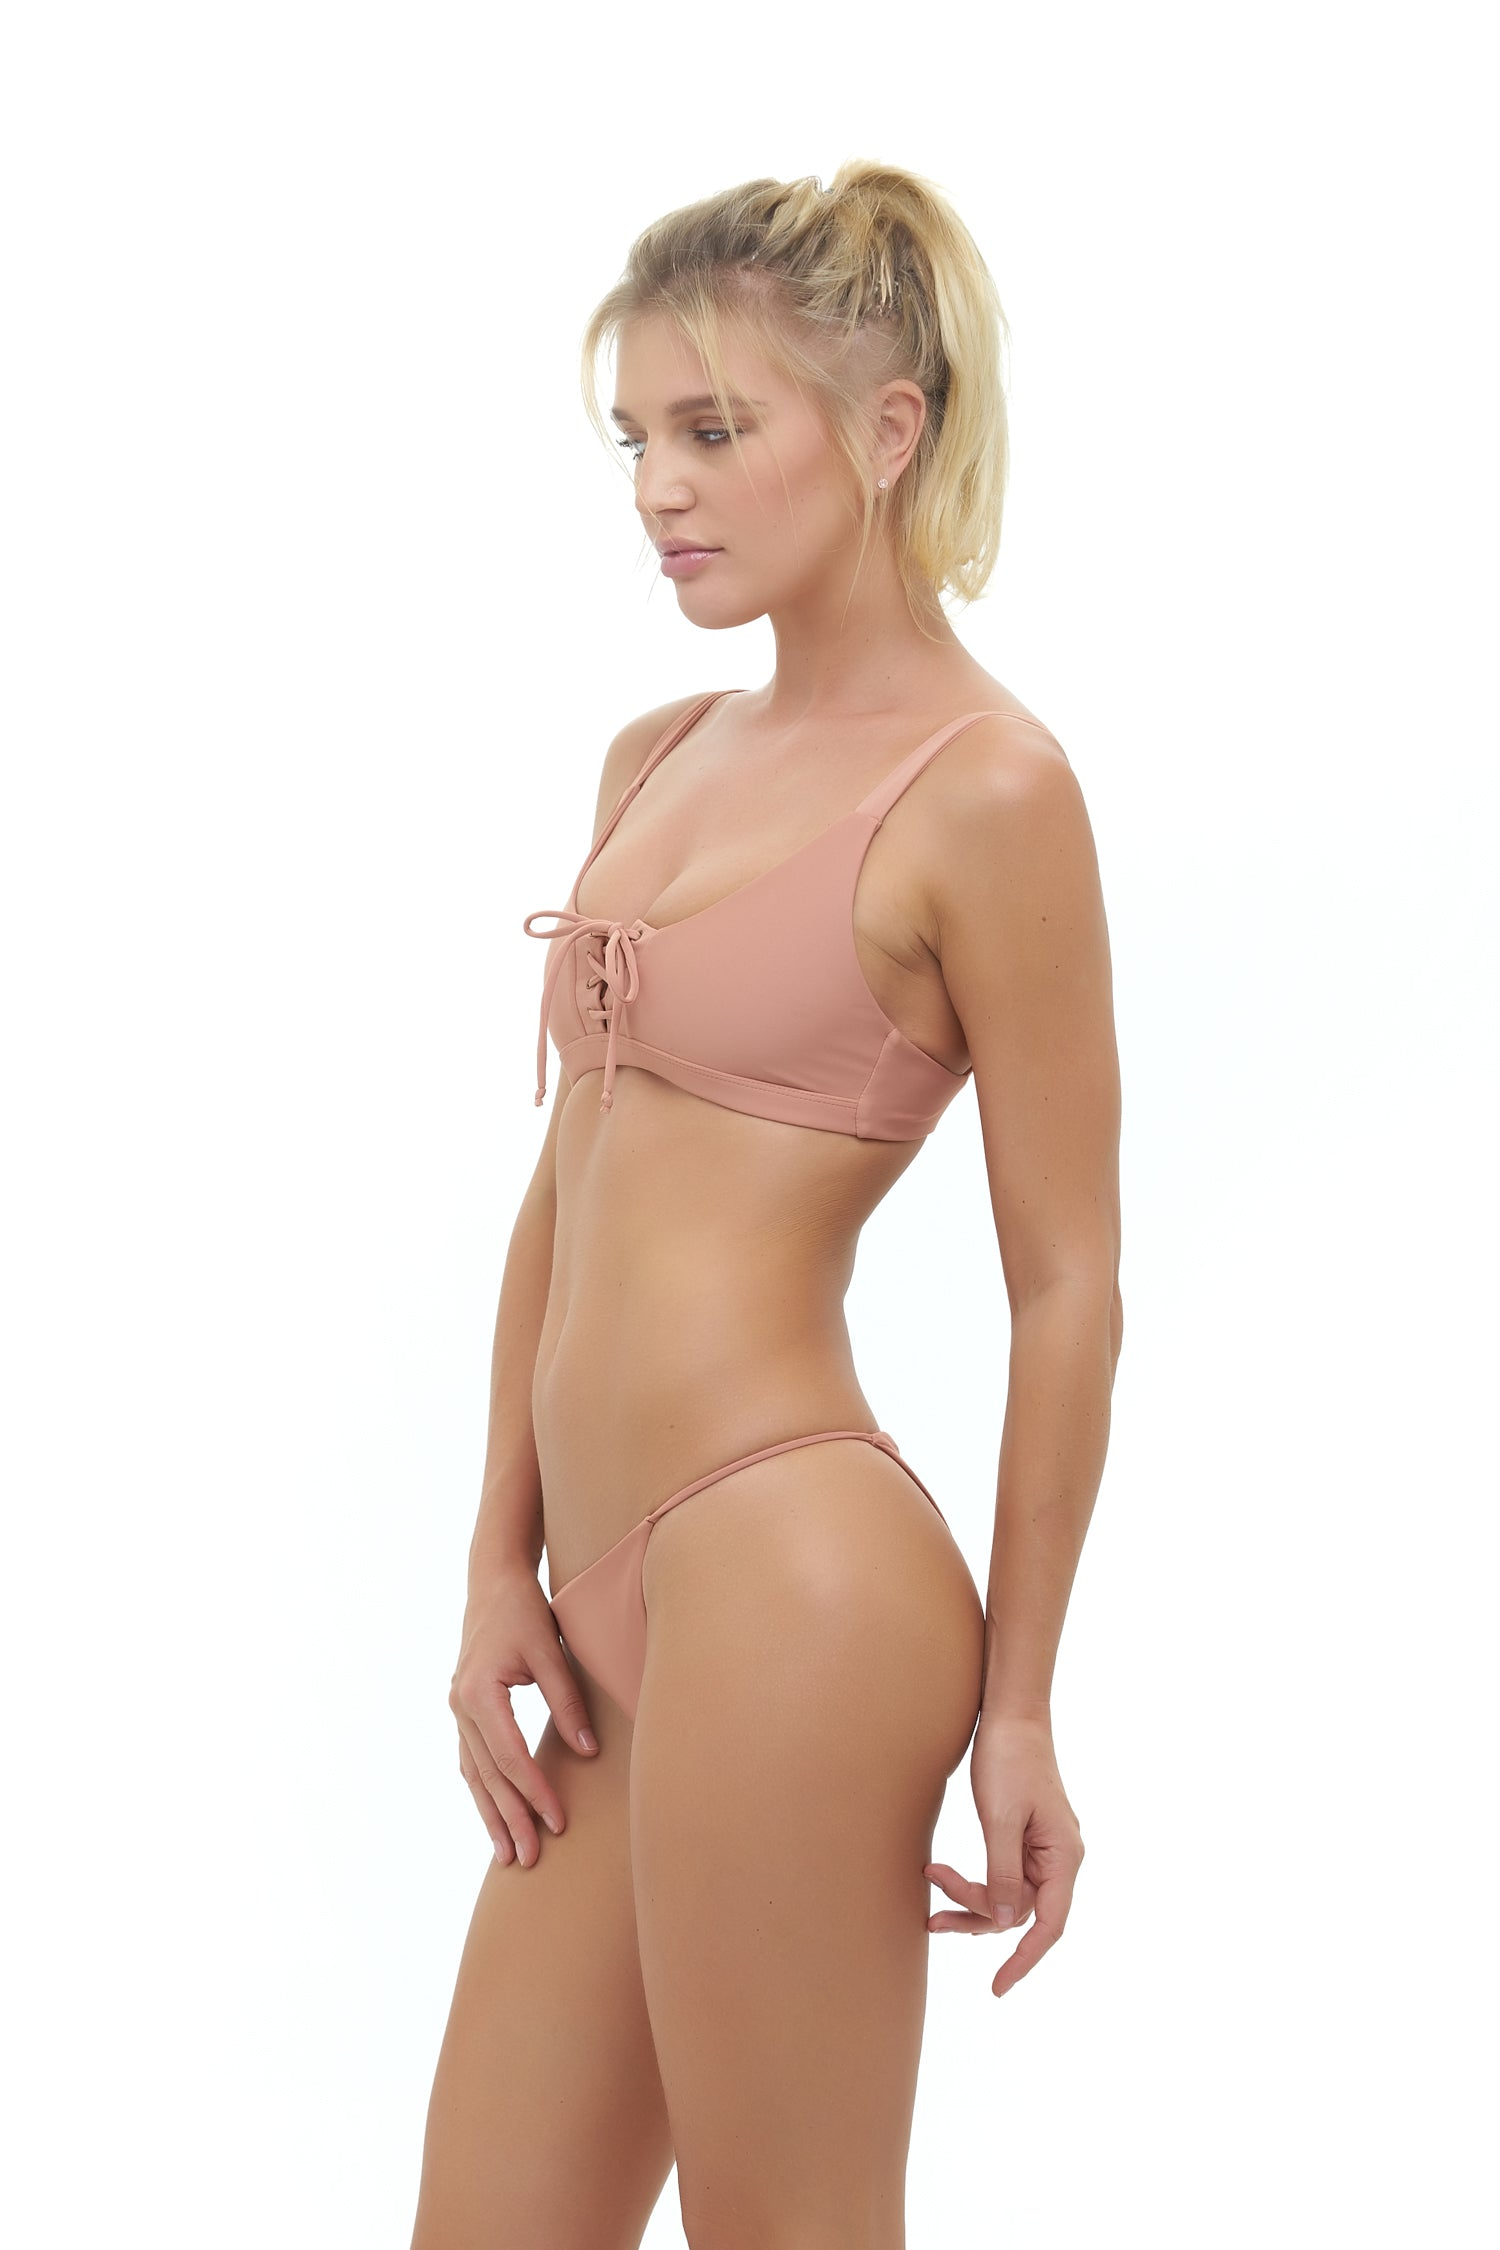 Storm Swimwear - Corsica - Lace Up bikini top in Sun Kissed